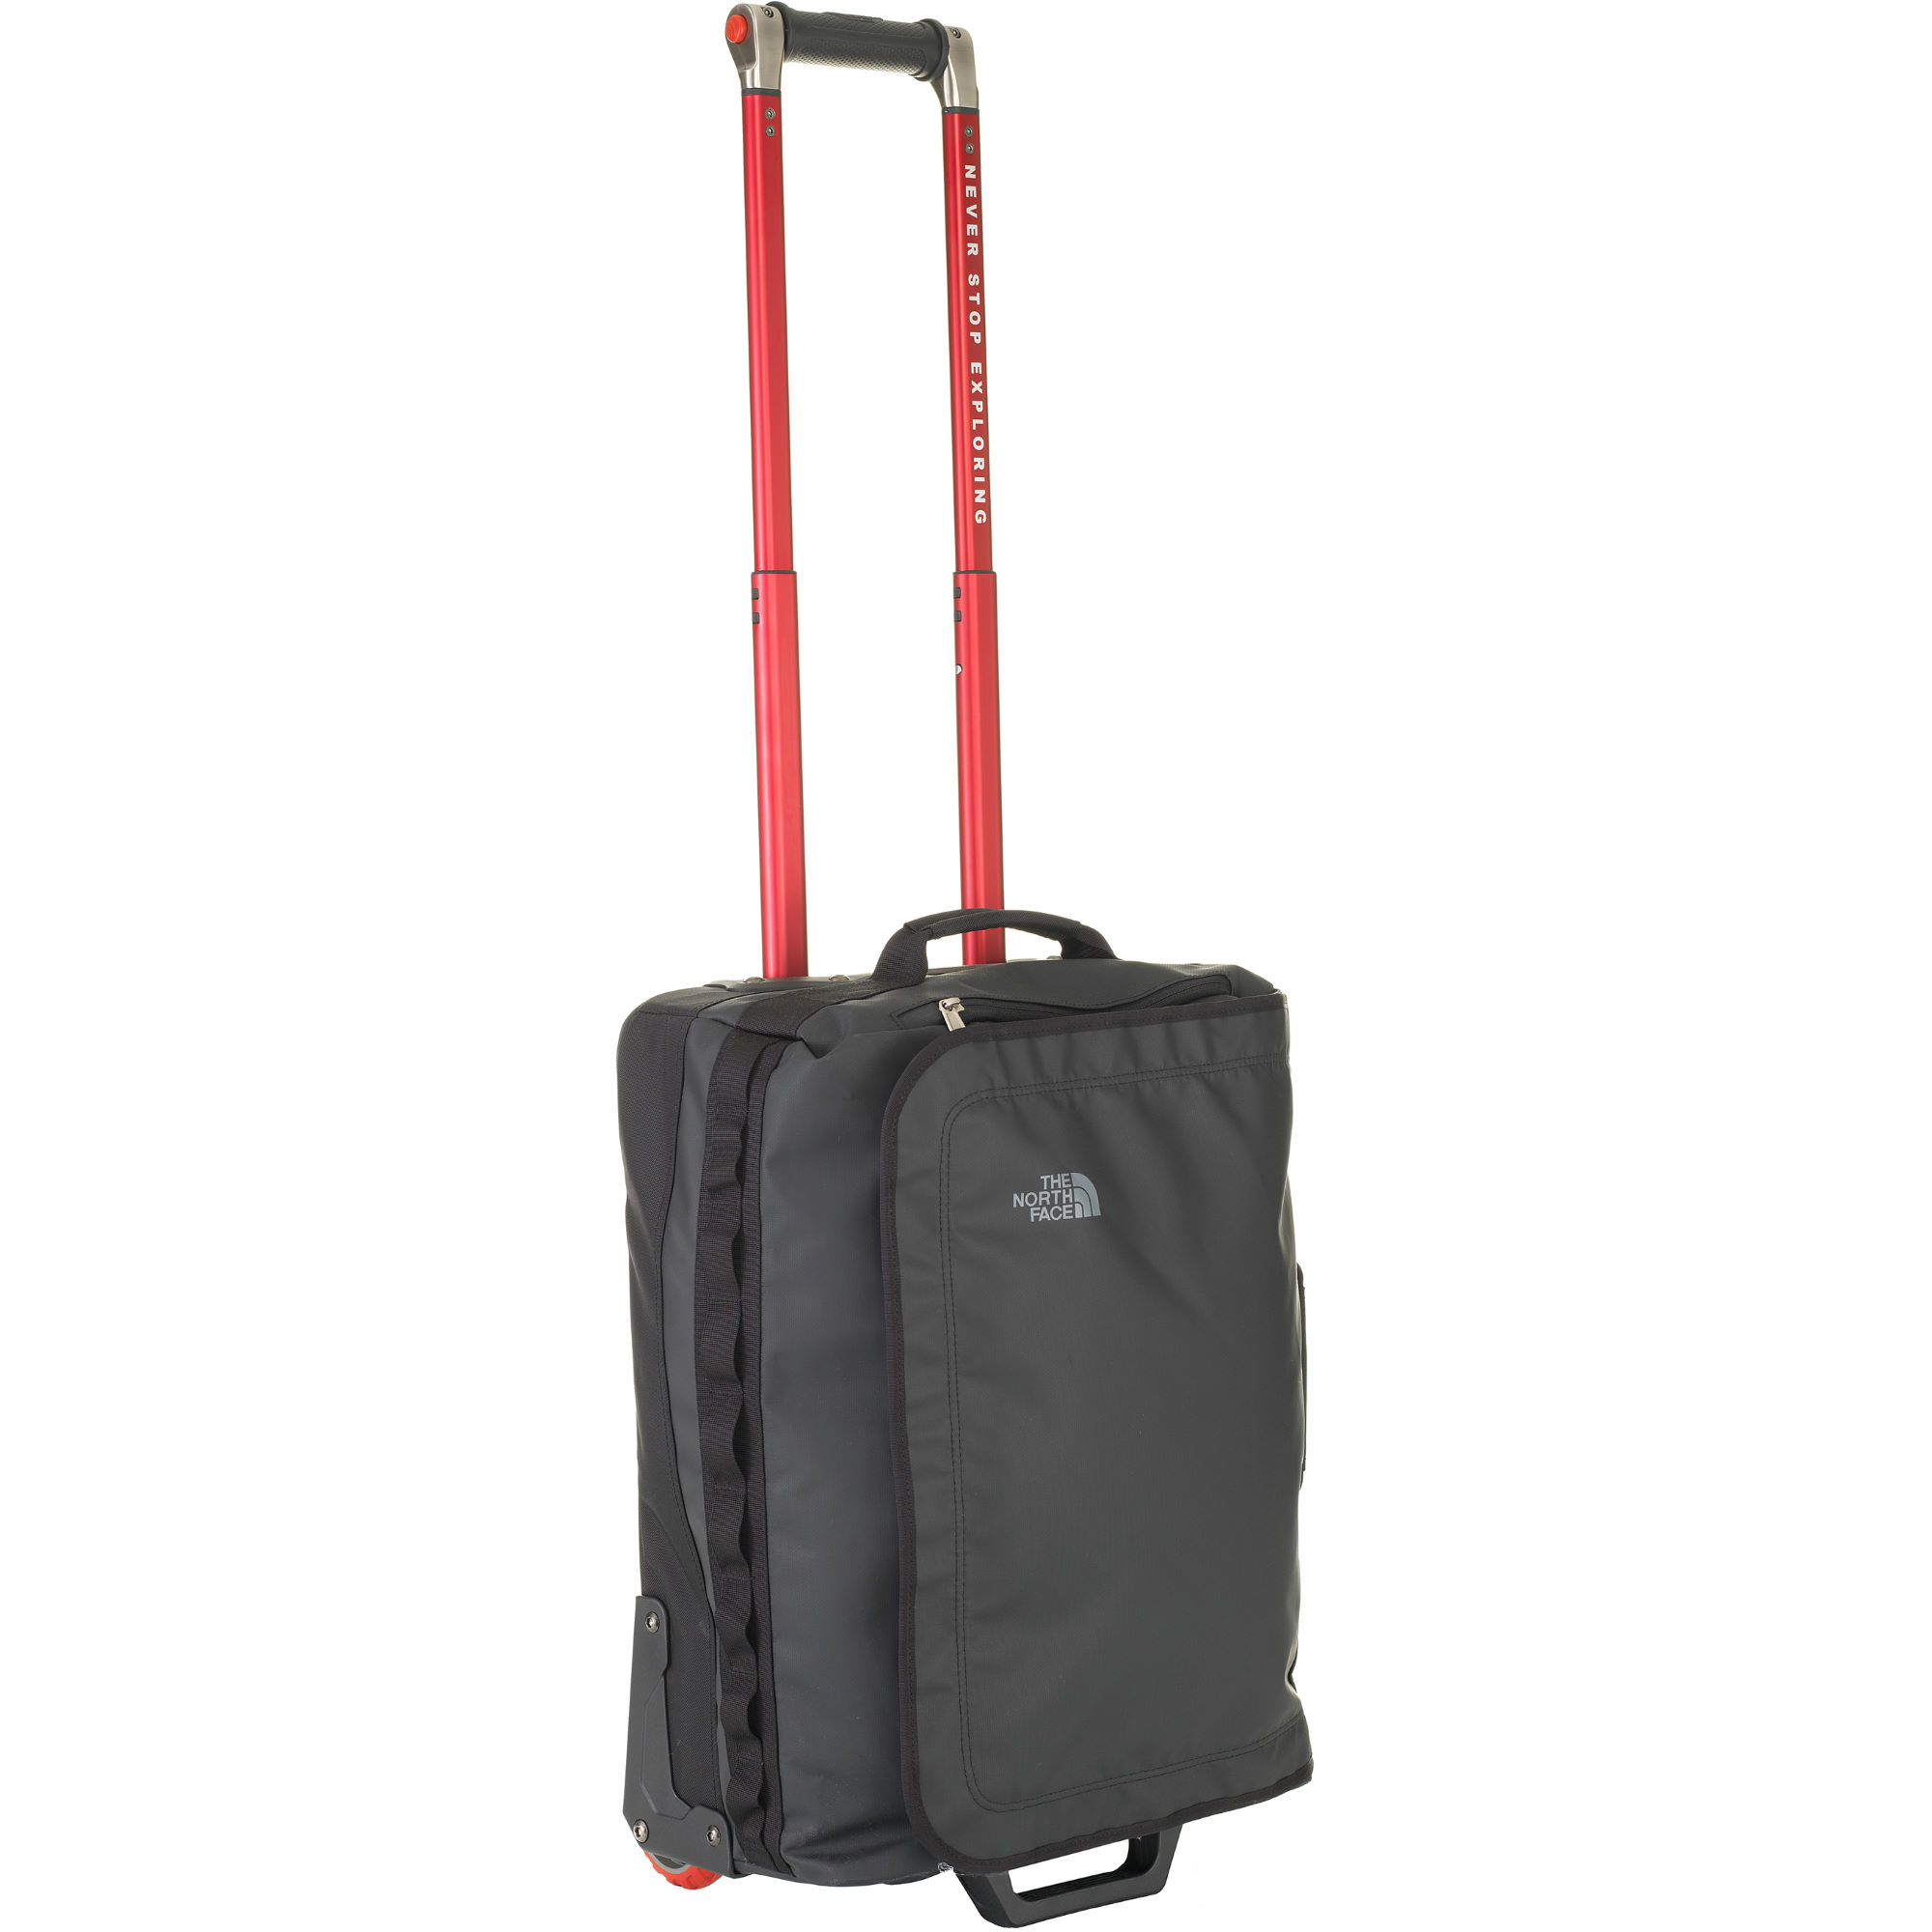 Small Travel Trailer Interiors: The North Face Rolling Thunder Wheeled Travel Bag